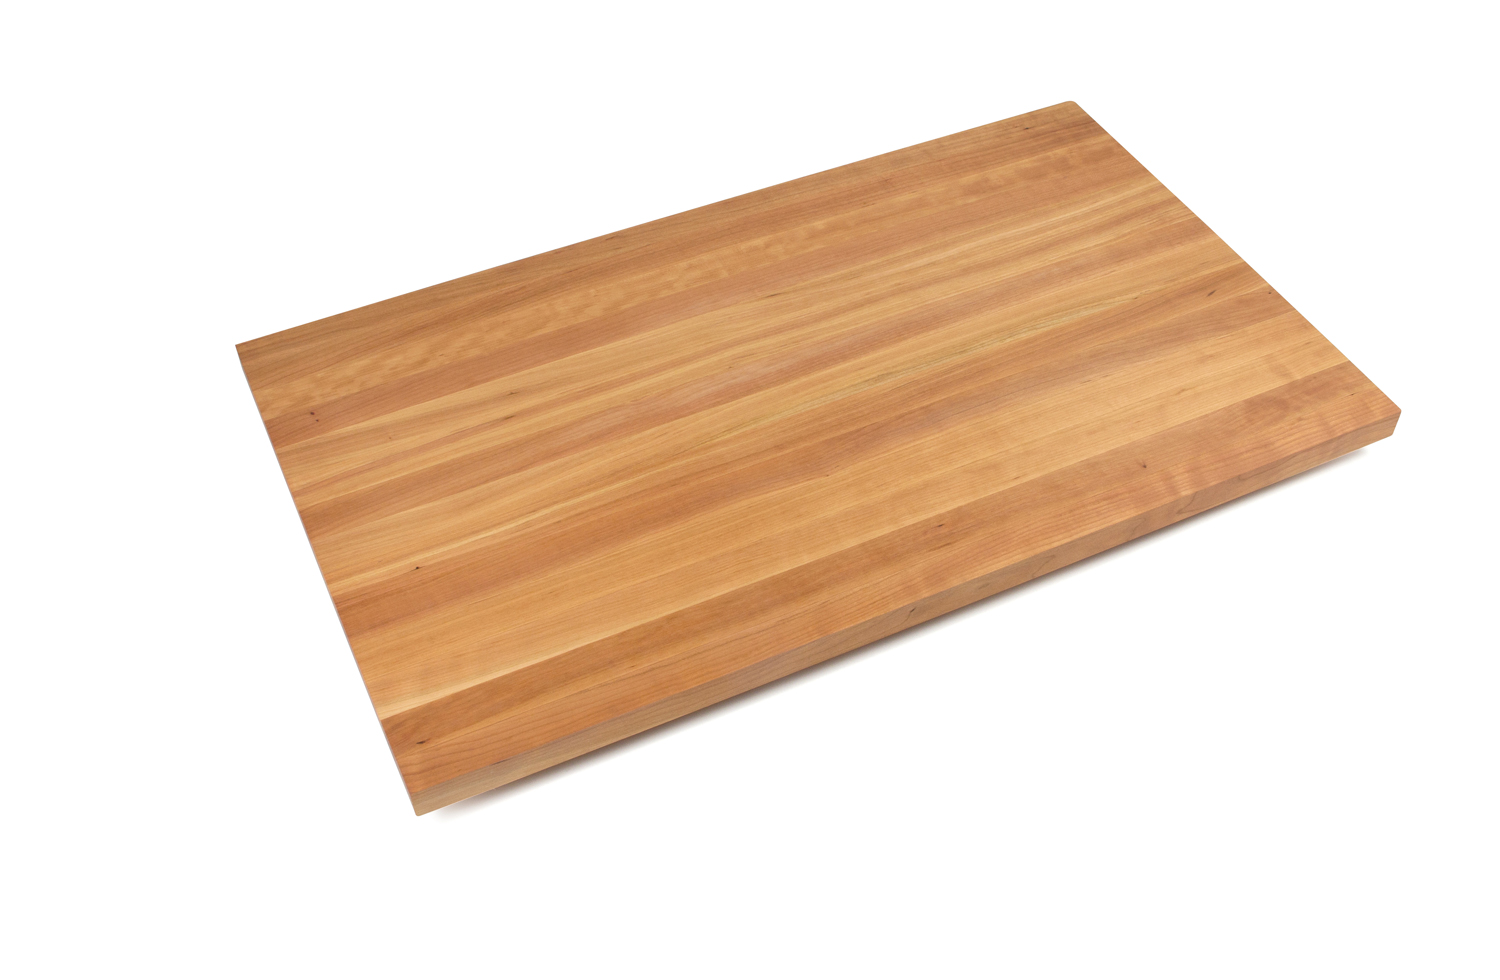 2-1/4 in. thick cherry edge grain butcher block counters 30 inches wide